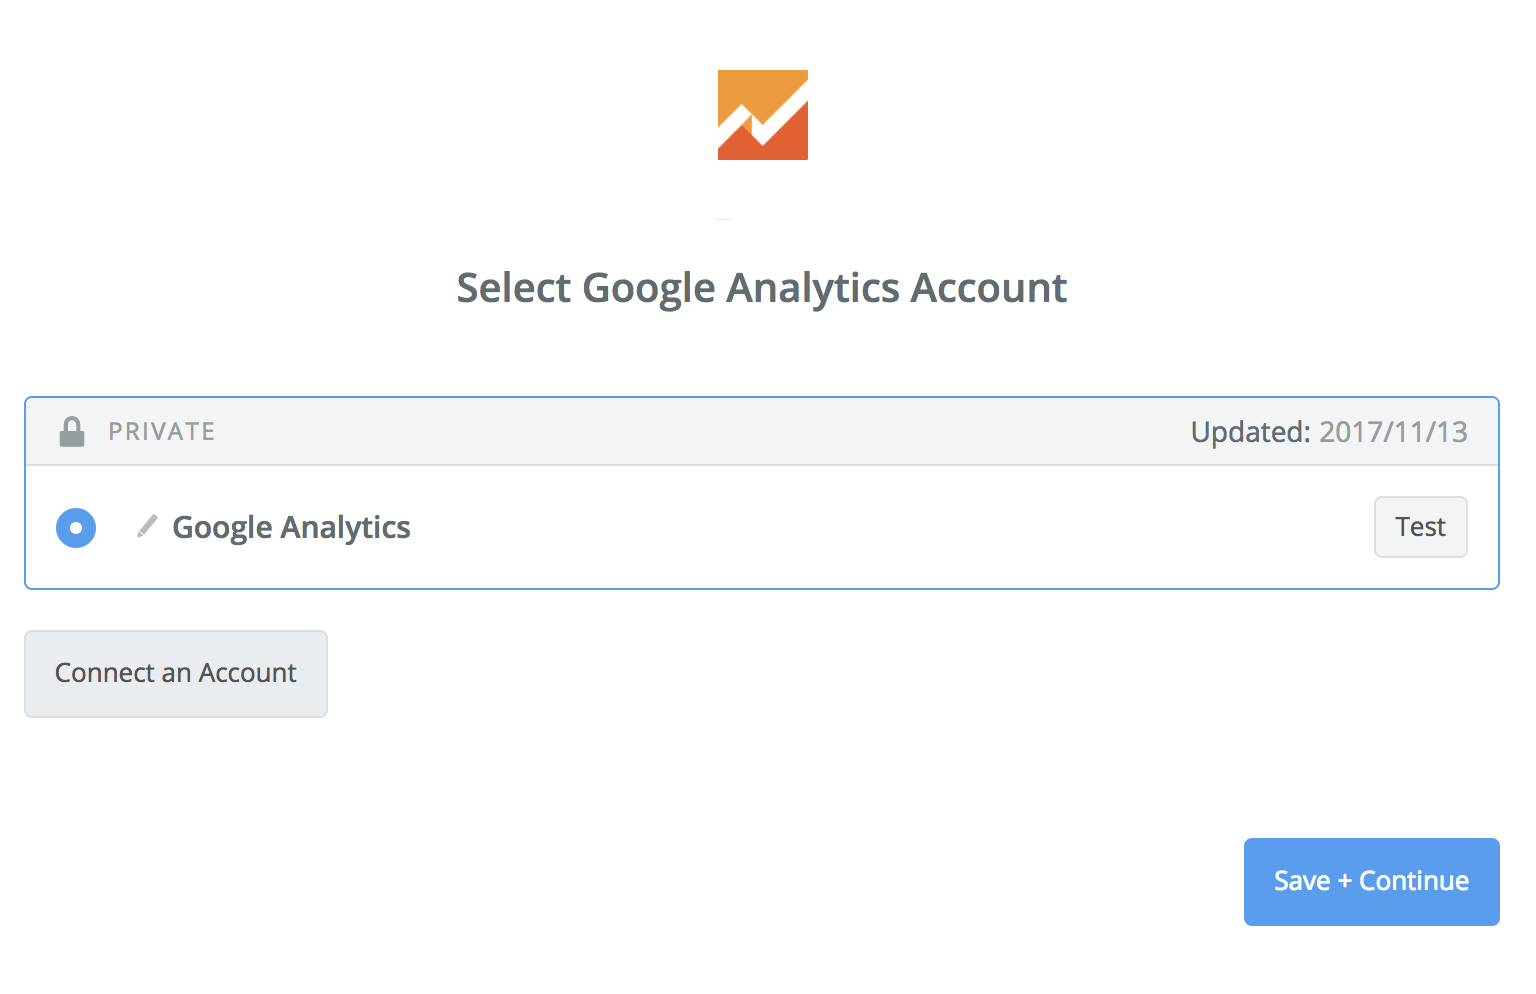 Google Analytics connection successful